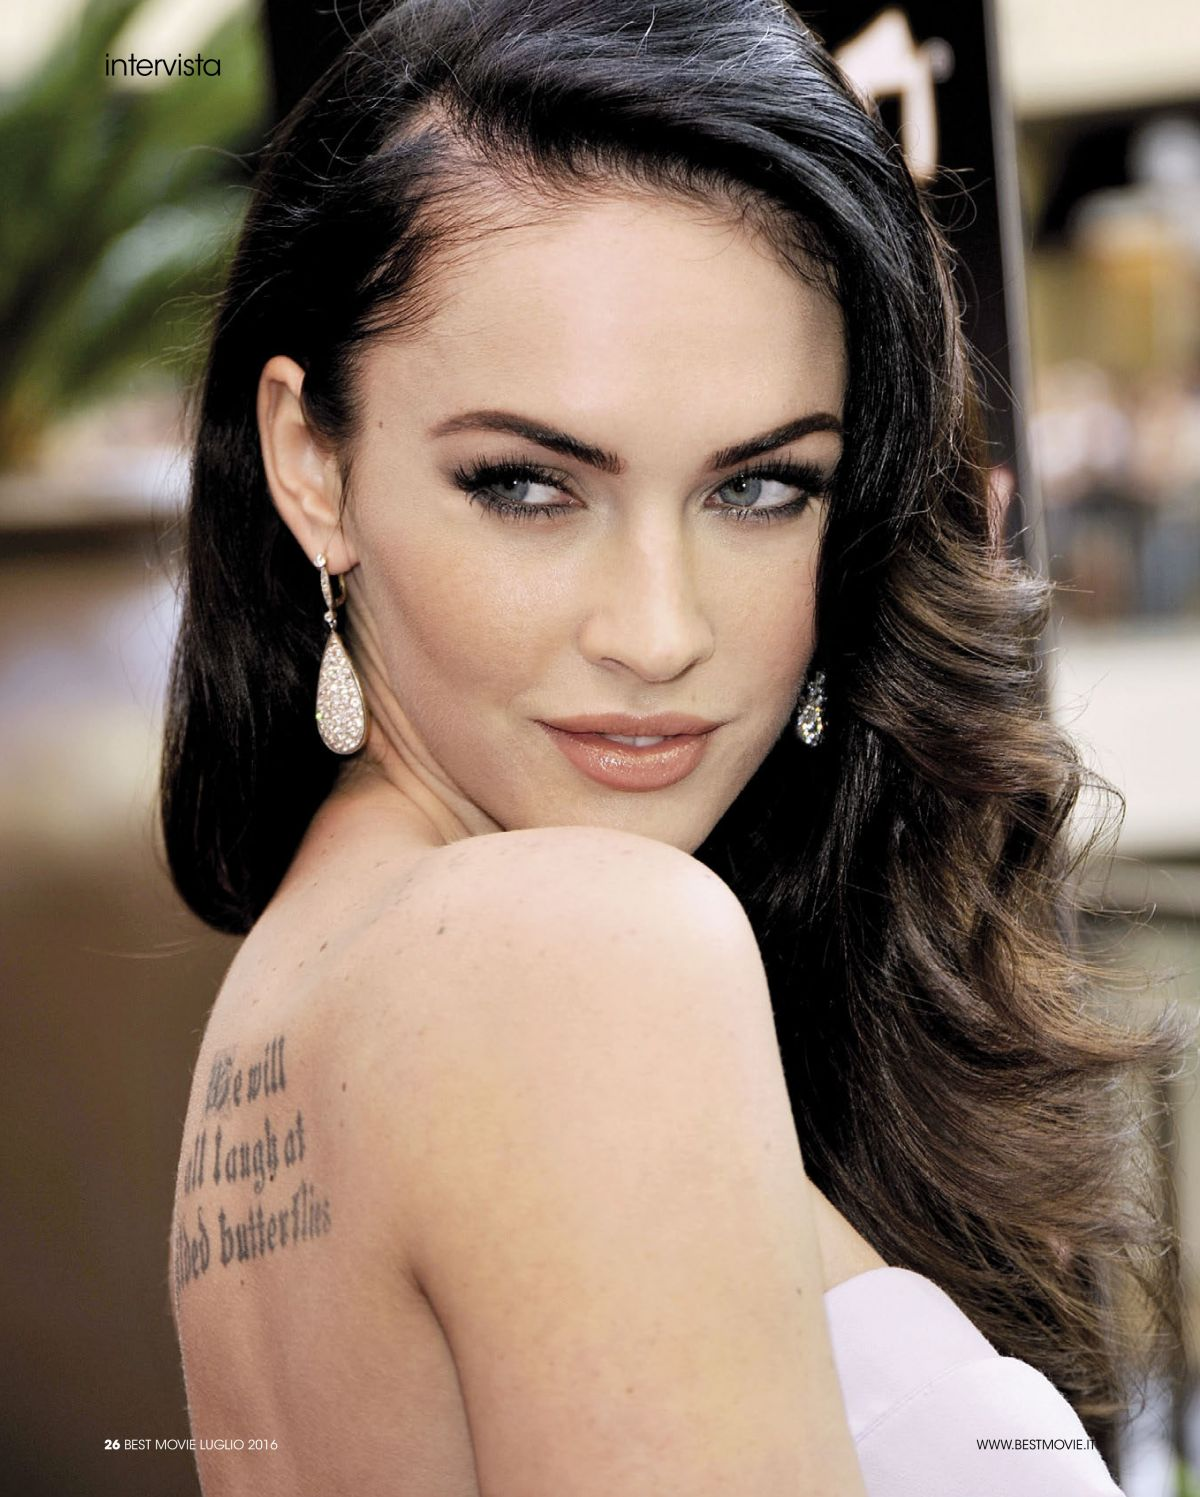 MEGAN FOX in SFX Magazine, August 2016